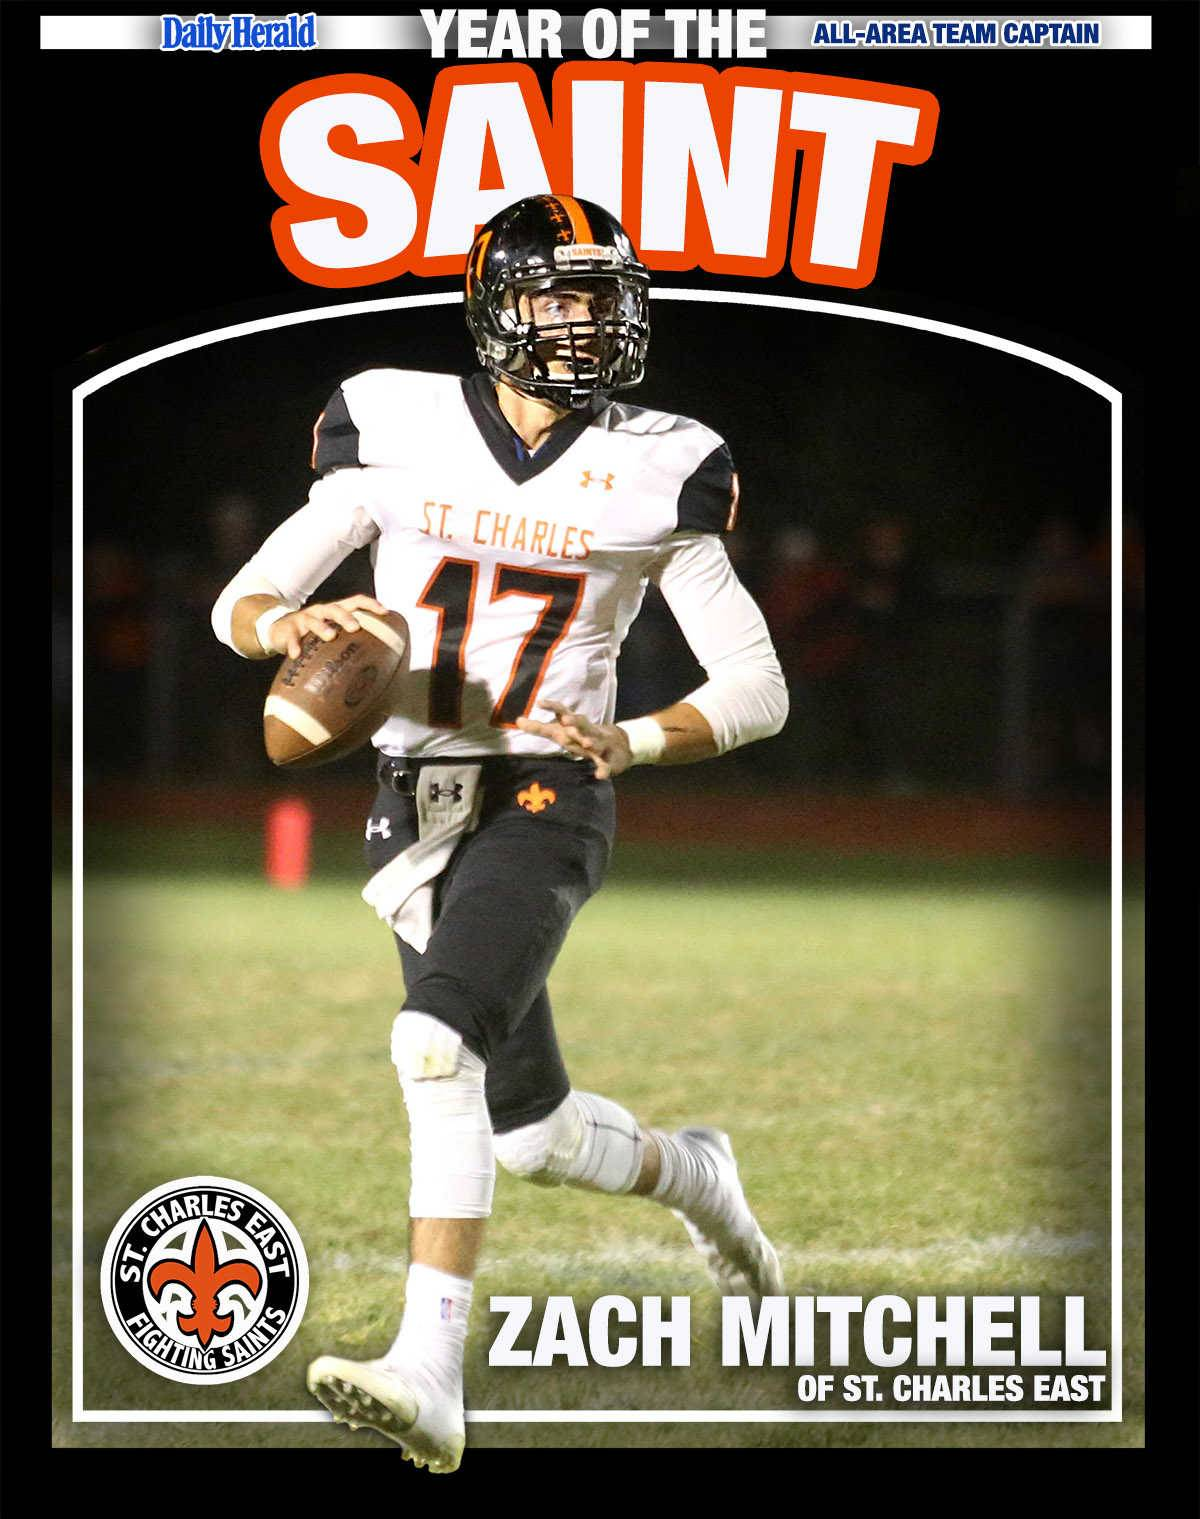 Zach Mitchell of St. Charles East